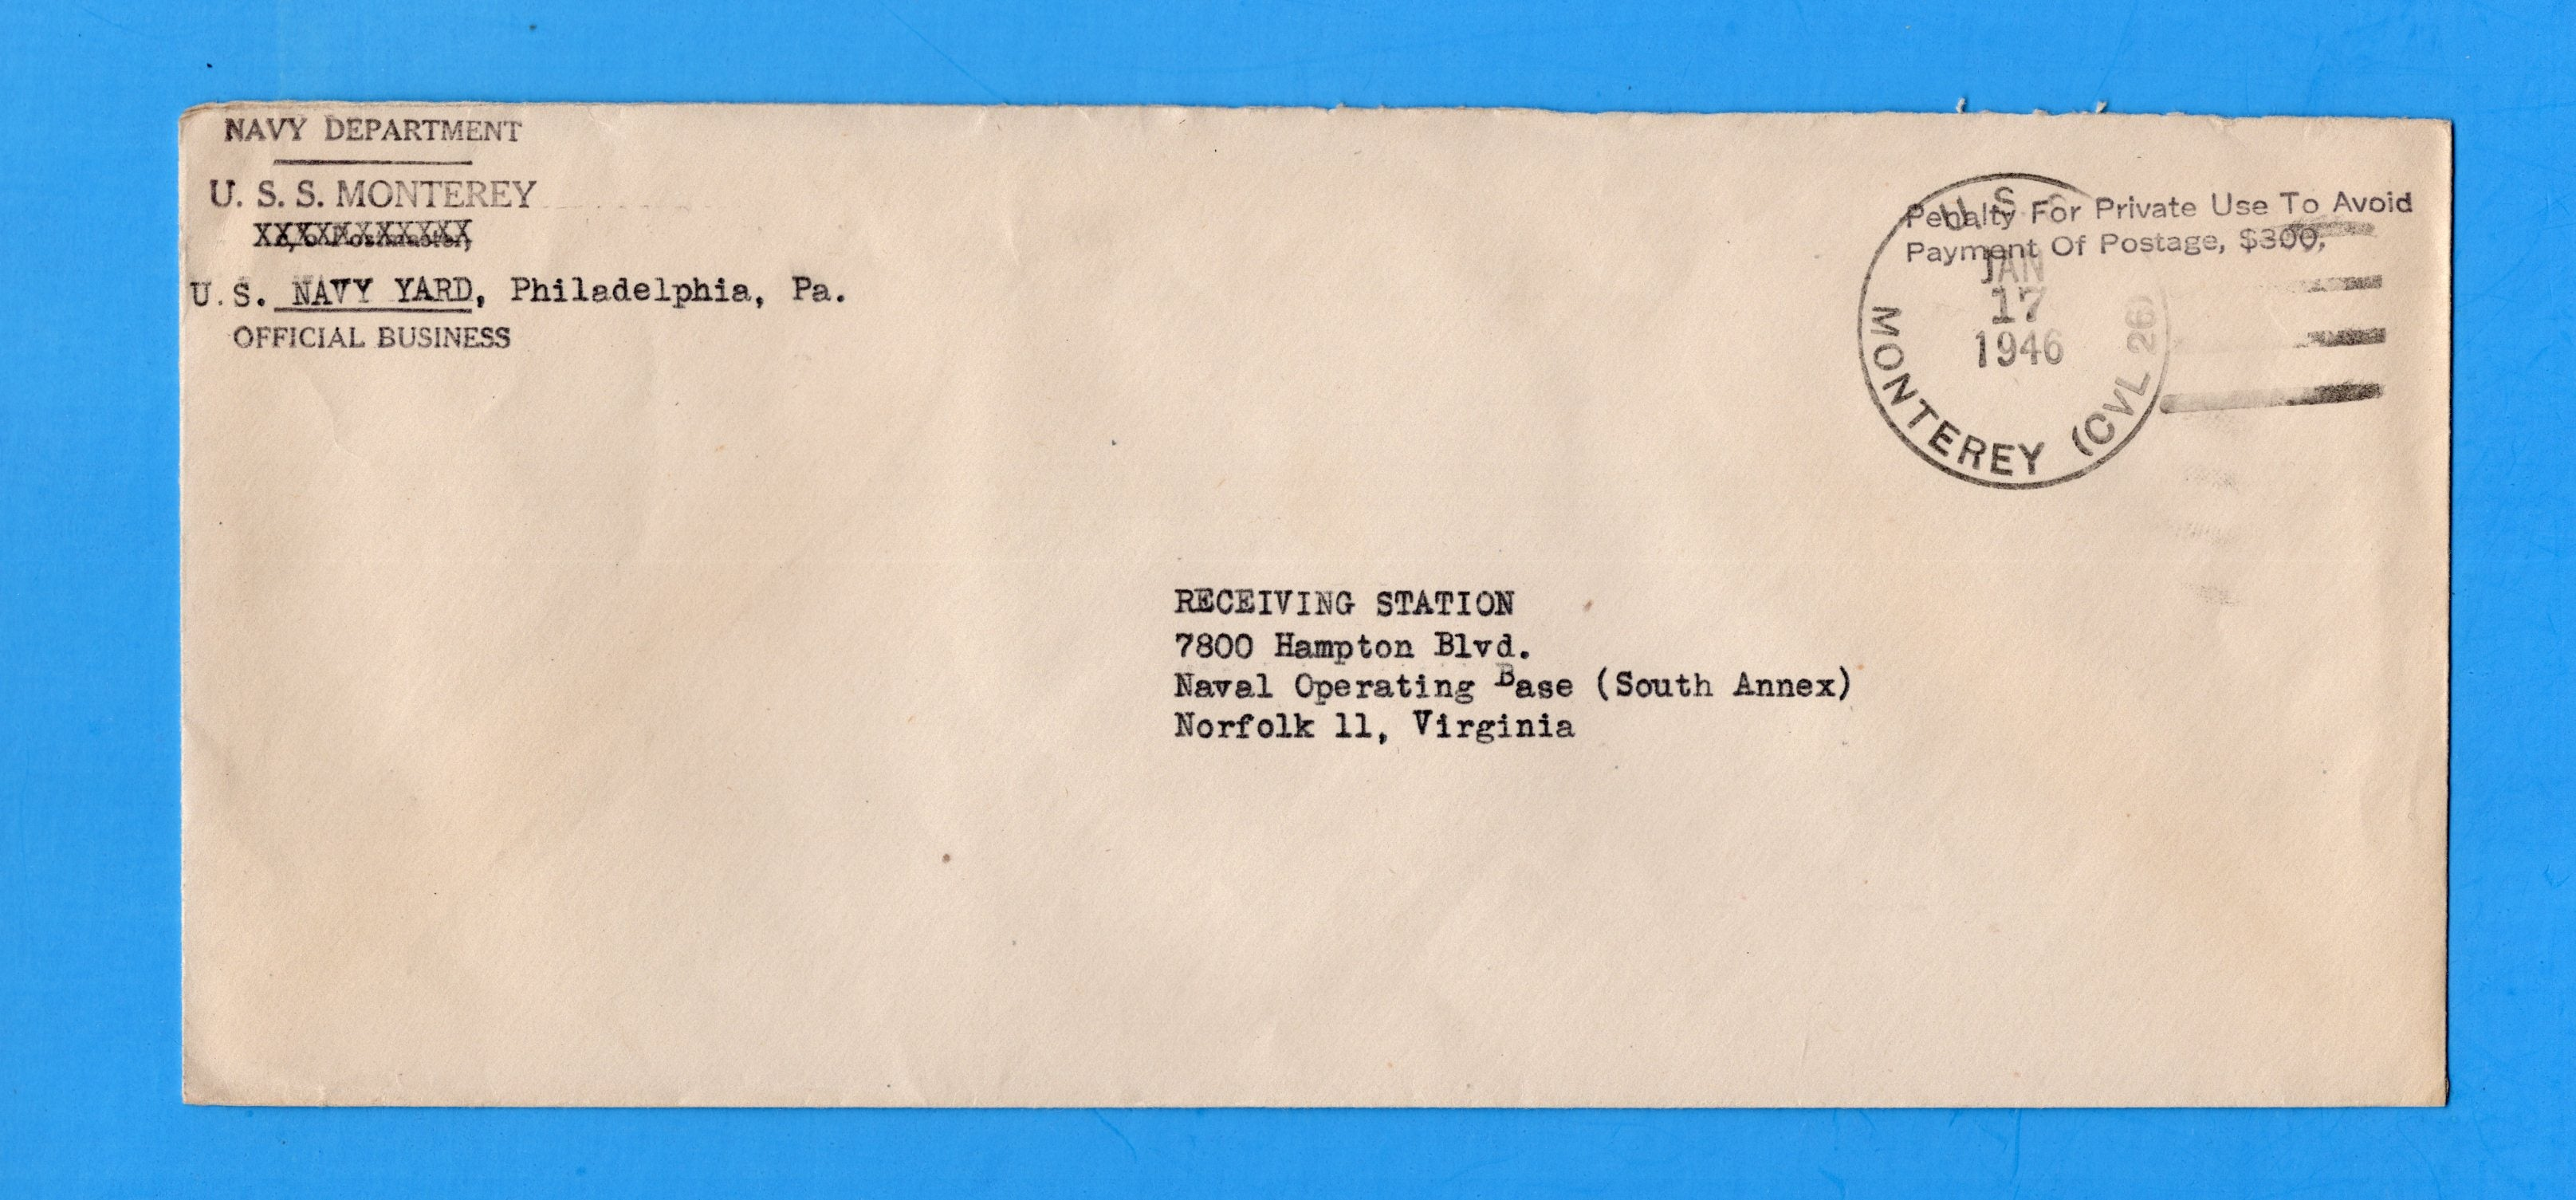 USS Monterey CVL-26 Navy Department Official Mail January 17, 1946